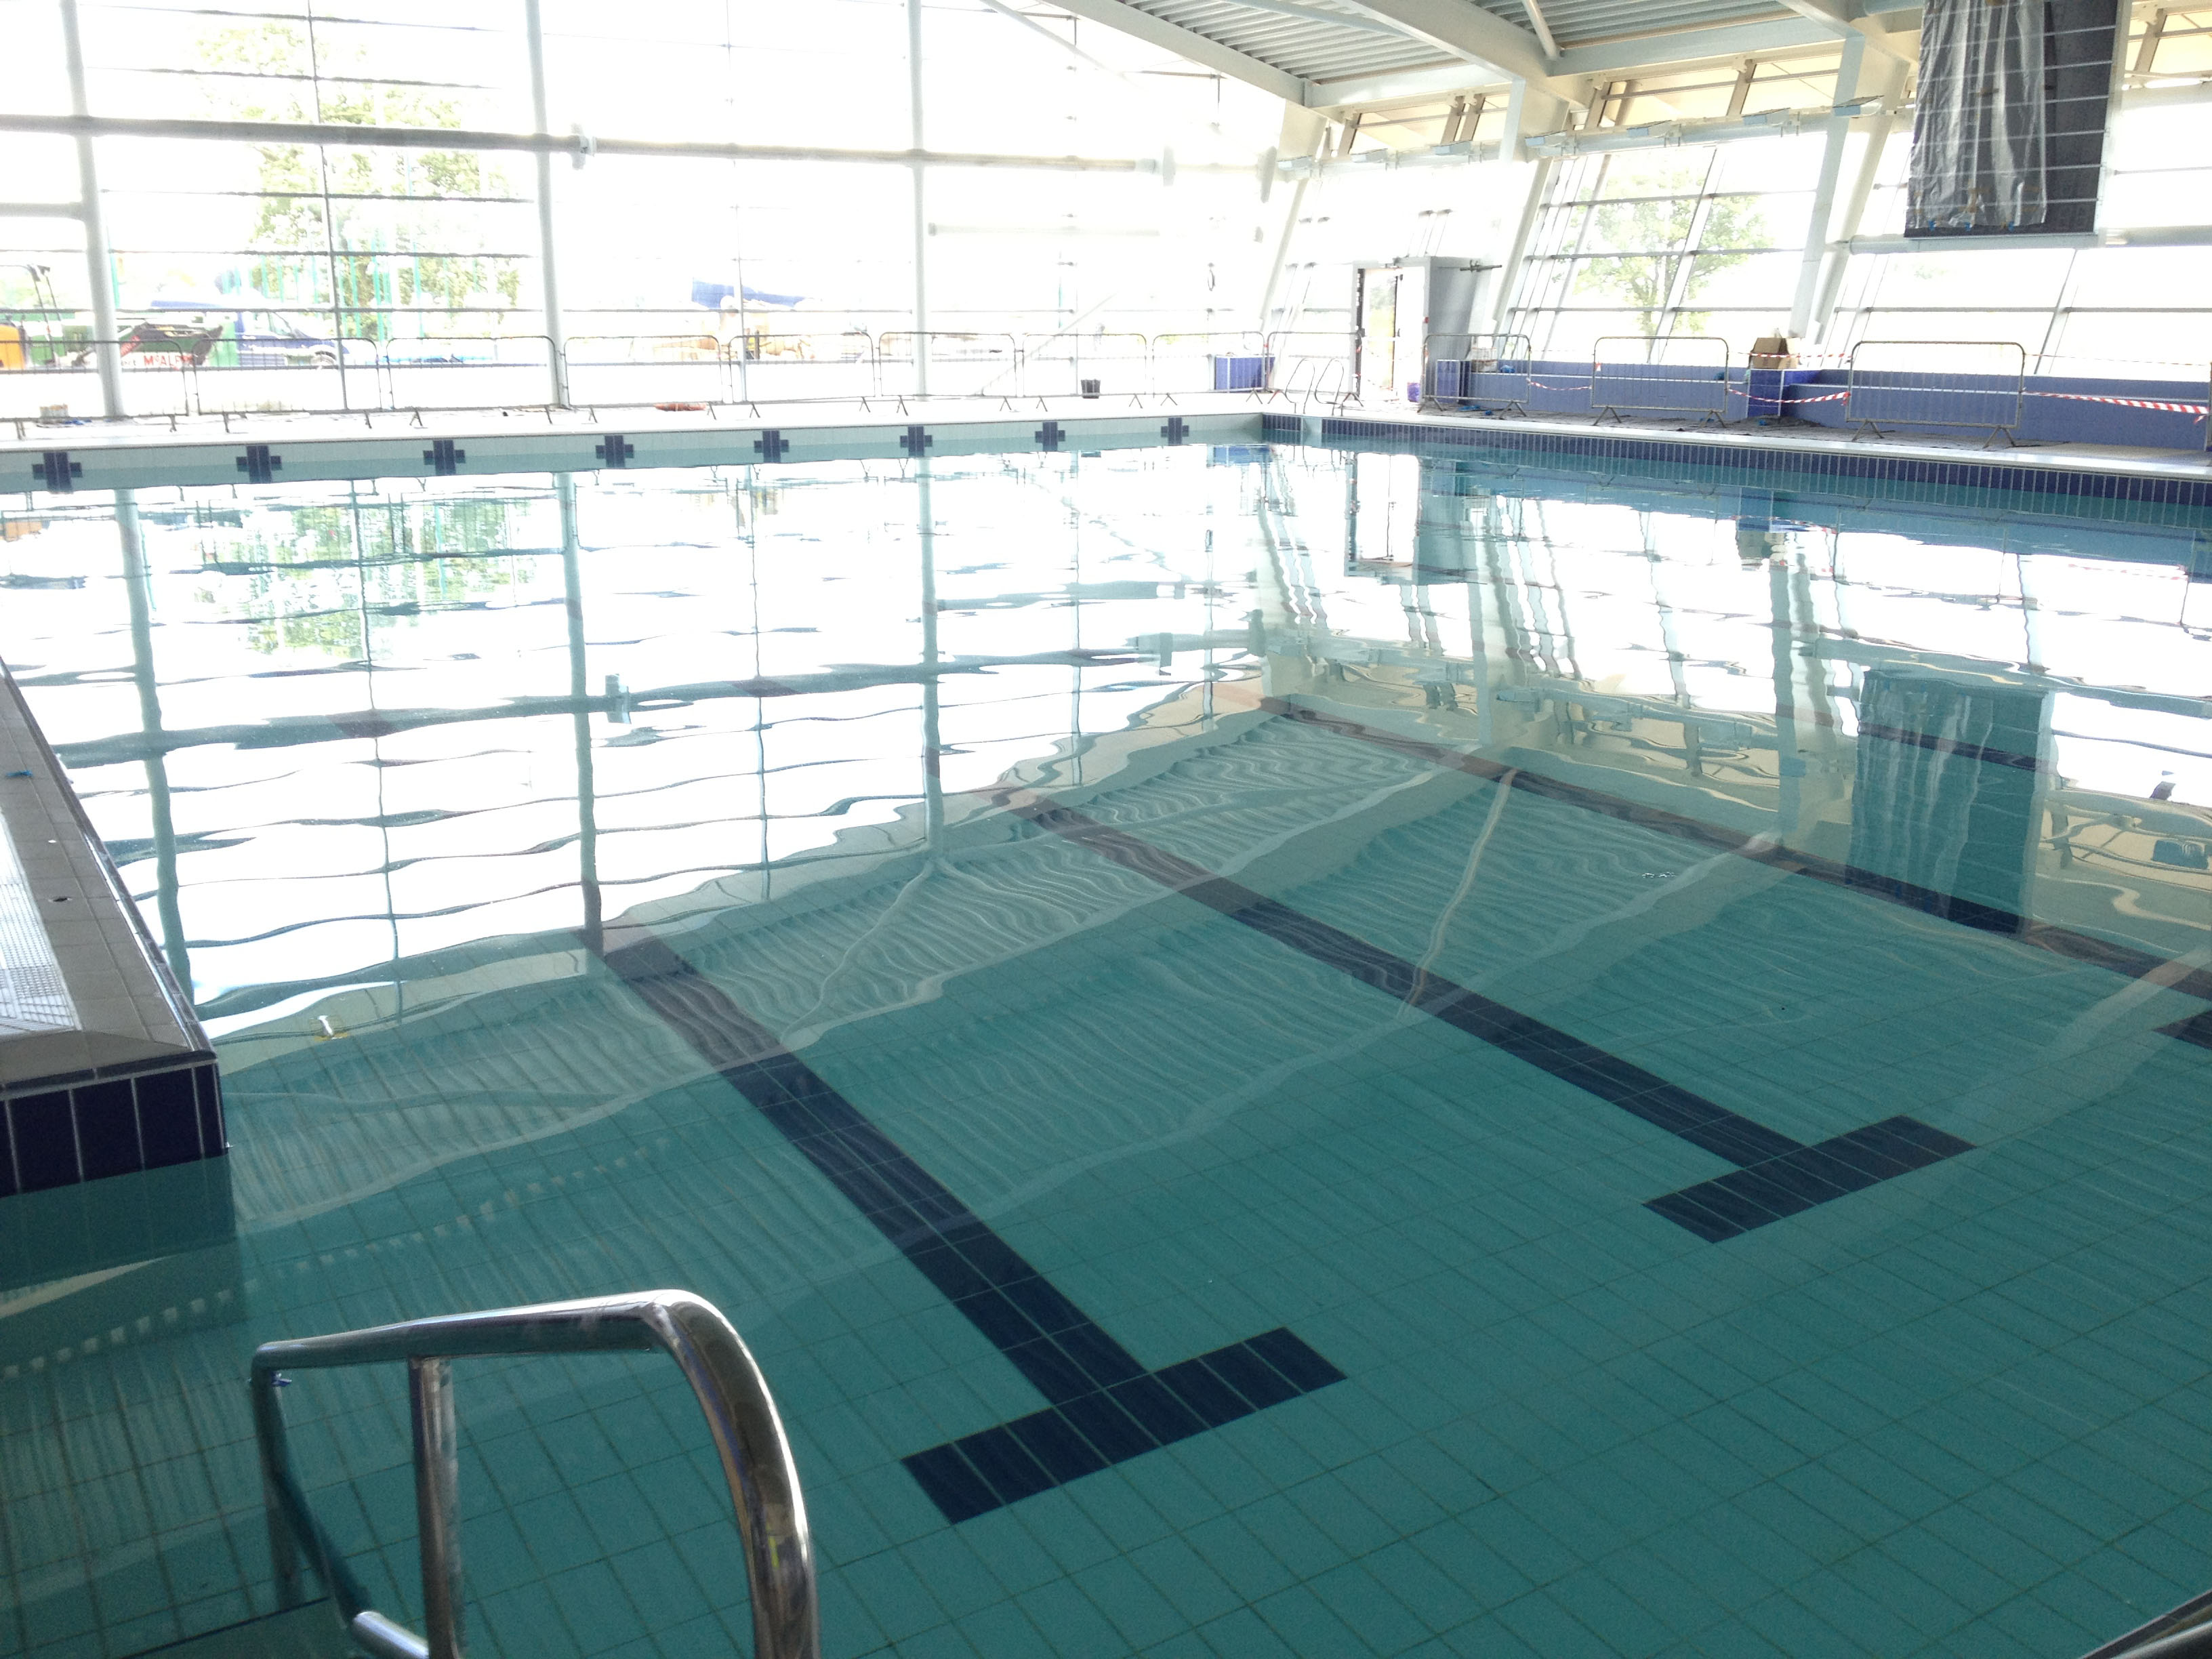 New pool to revolutionise sport in york says liberal democrat councillor steve galloway for University of york swimming pool